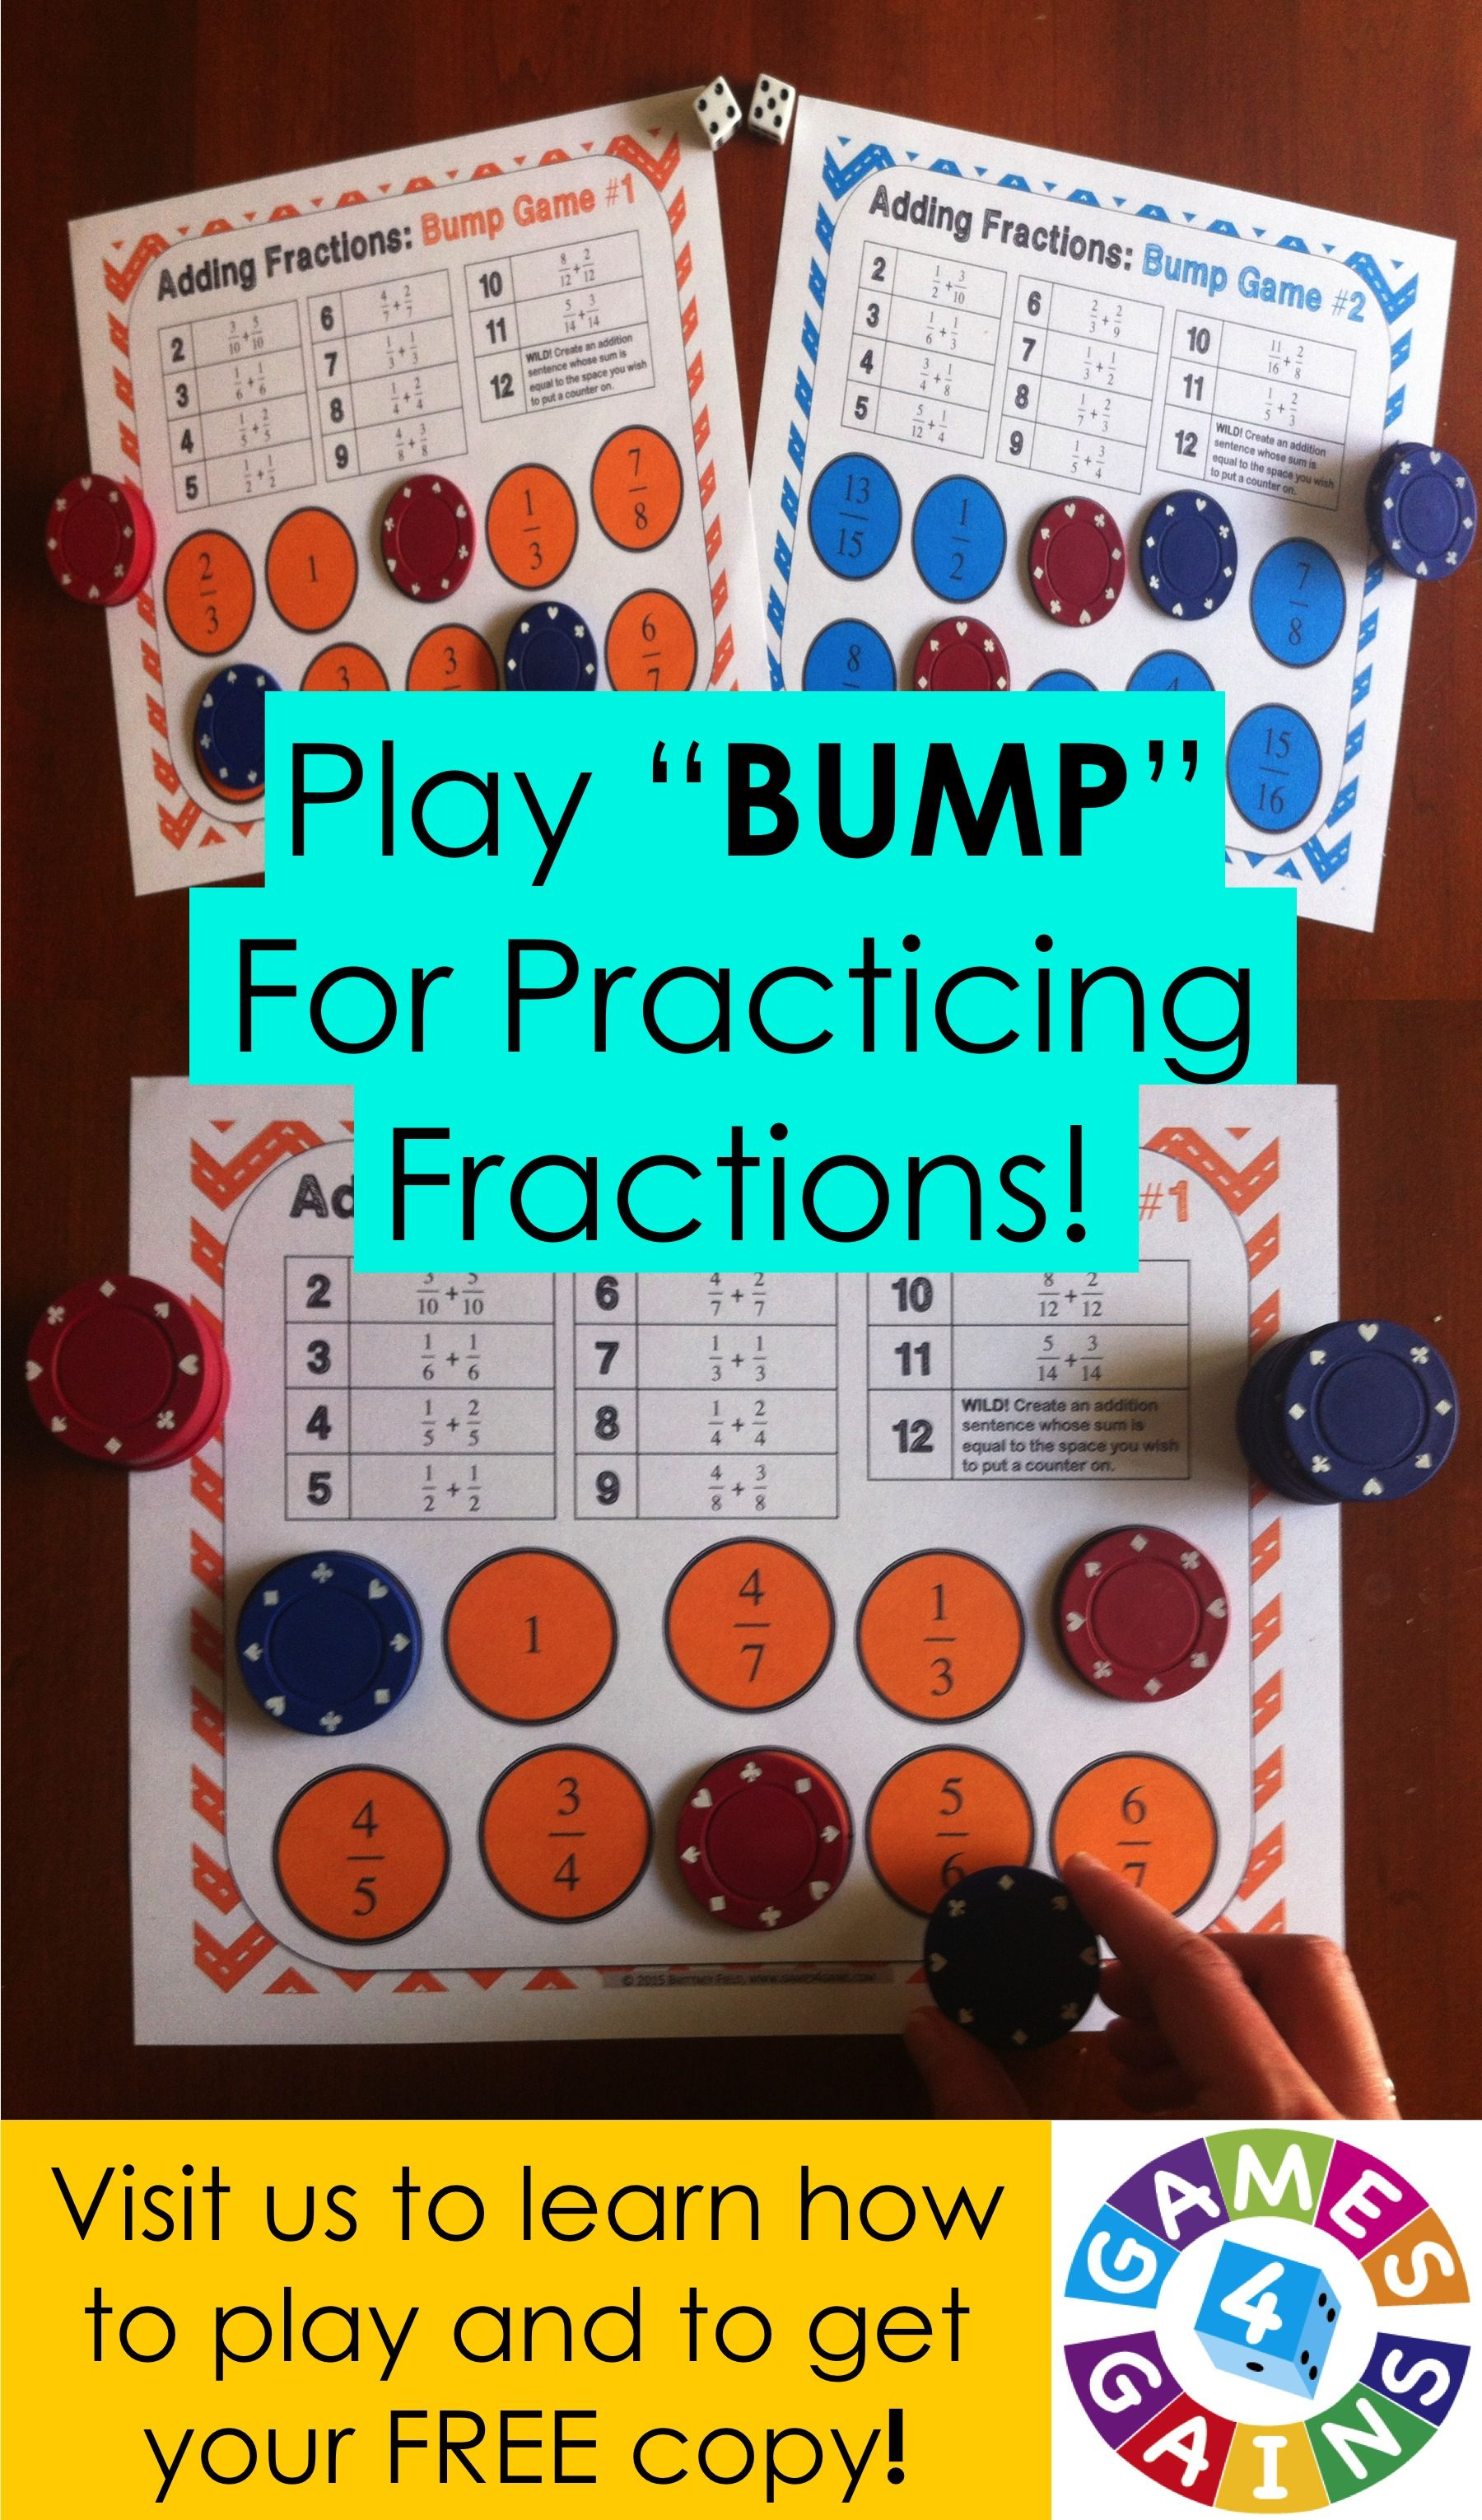 Adding Fractions Bump Game Freebie Games 4 Gains Math Fractions Fractions Math Adding fraction math games